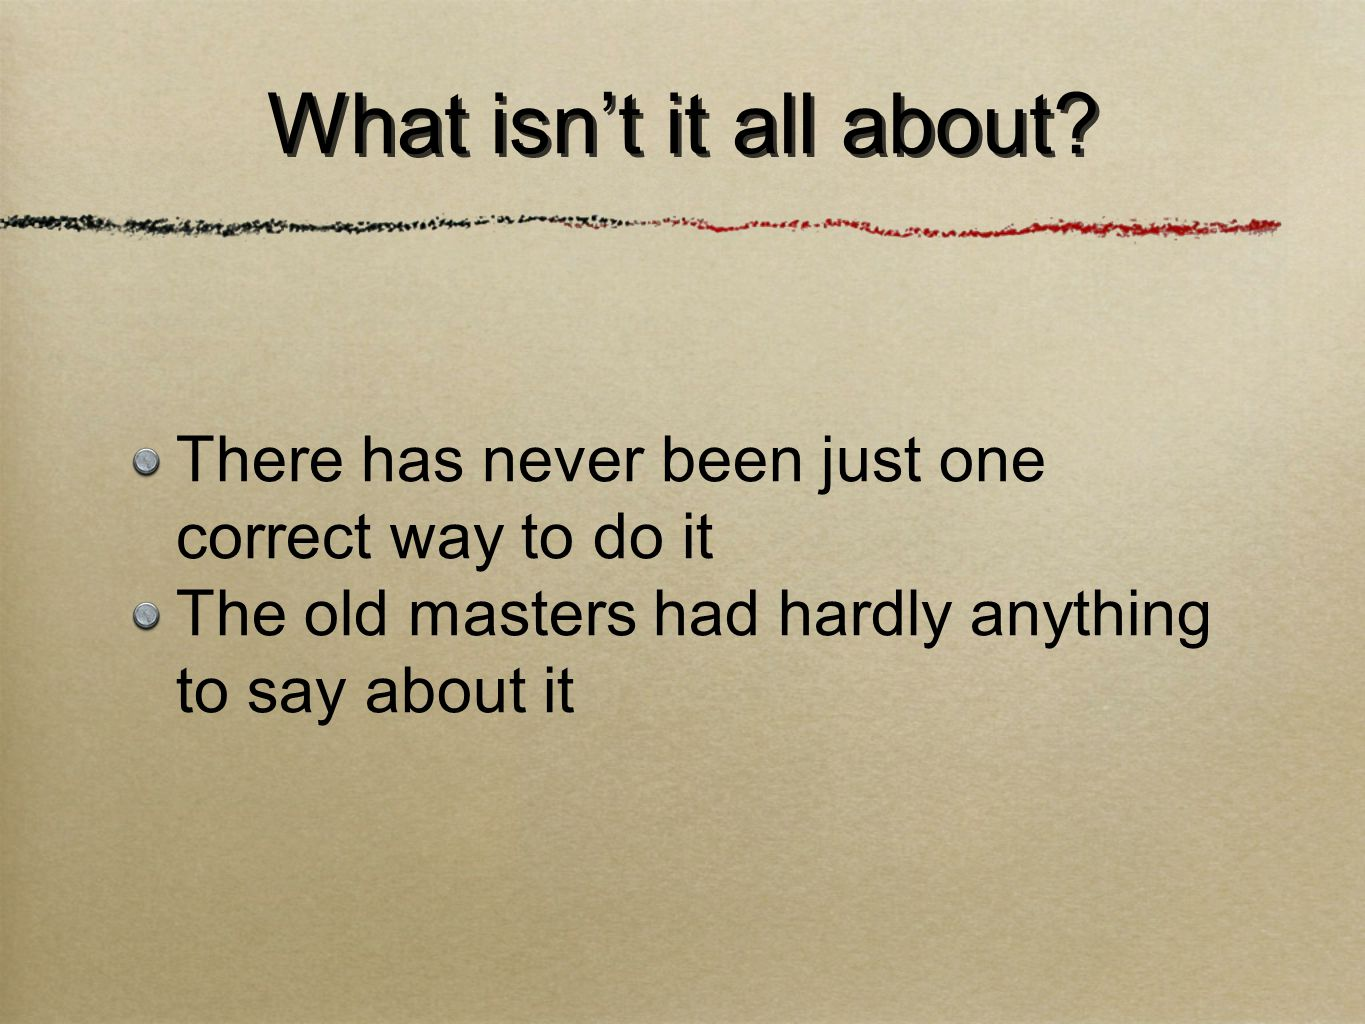 What isn't it all about? There has never been just one correct way to do it The old masters had hardly anything to say about it